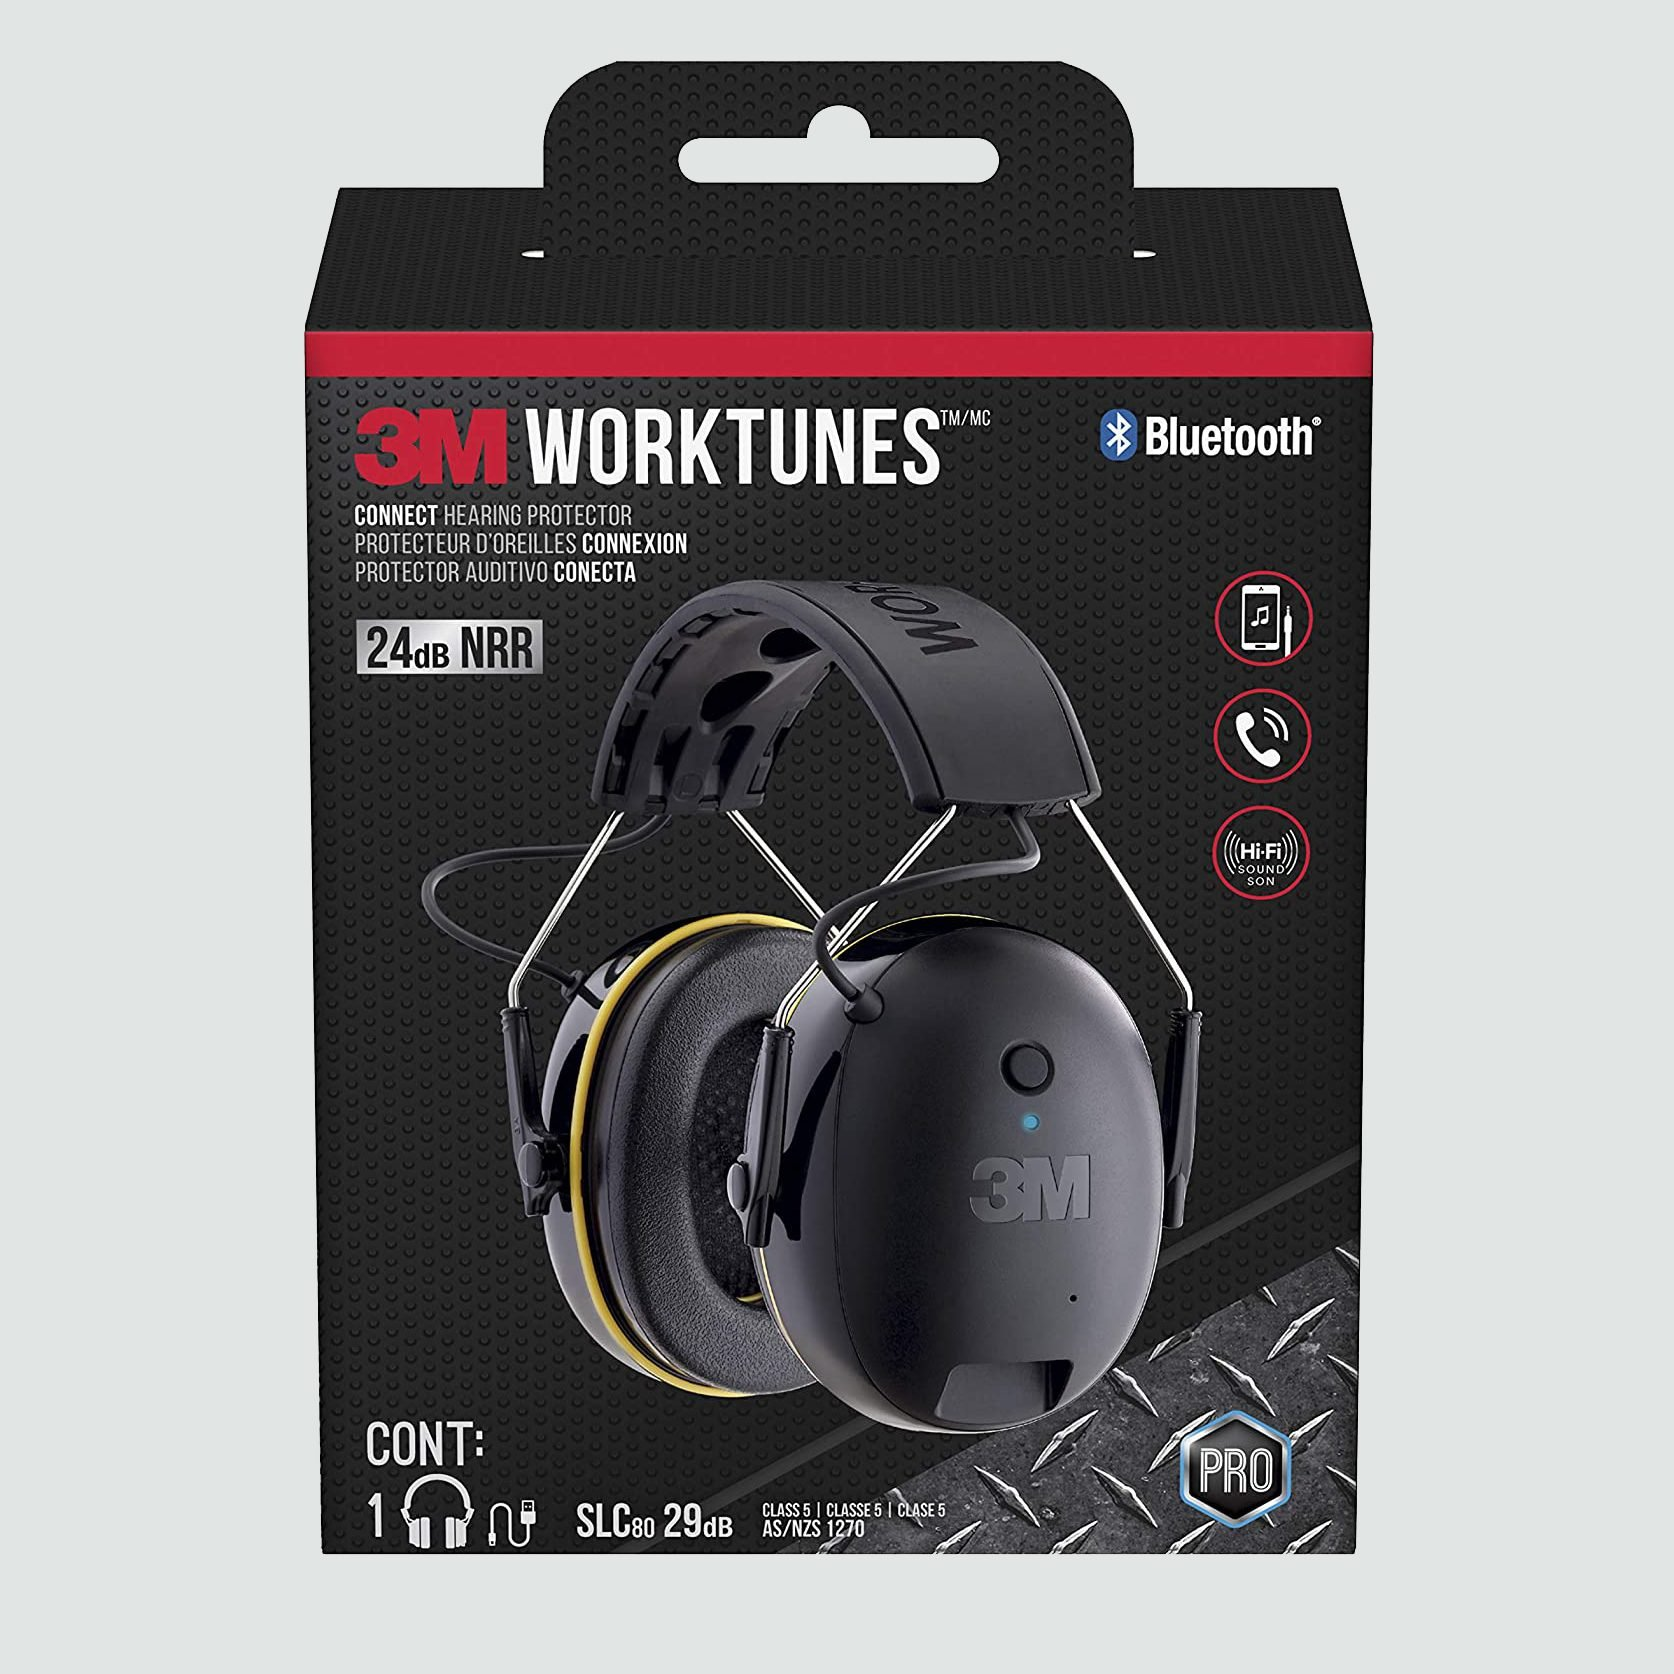 3M Safety WorkTunes Connect Hearing Protector